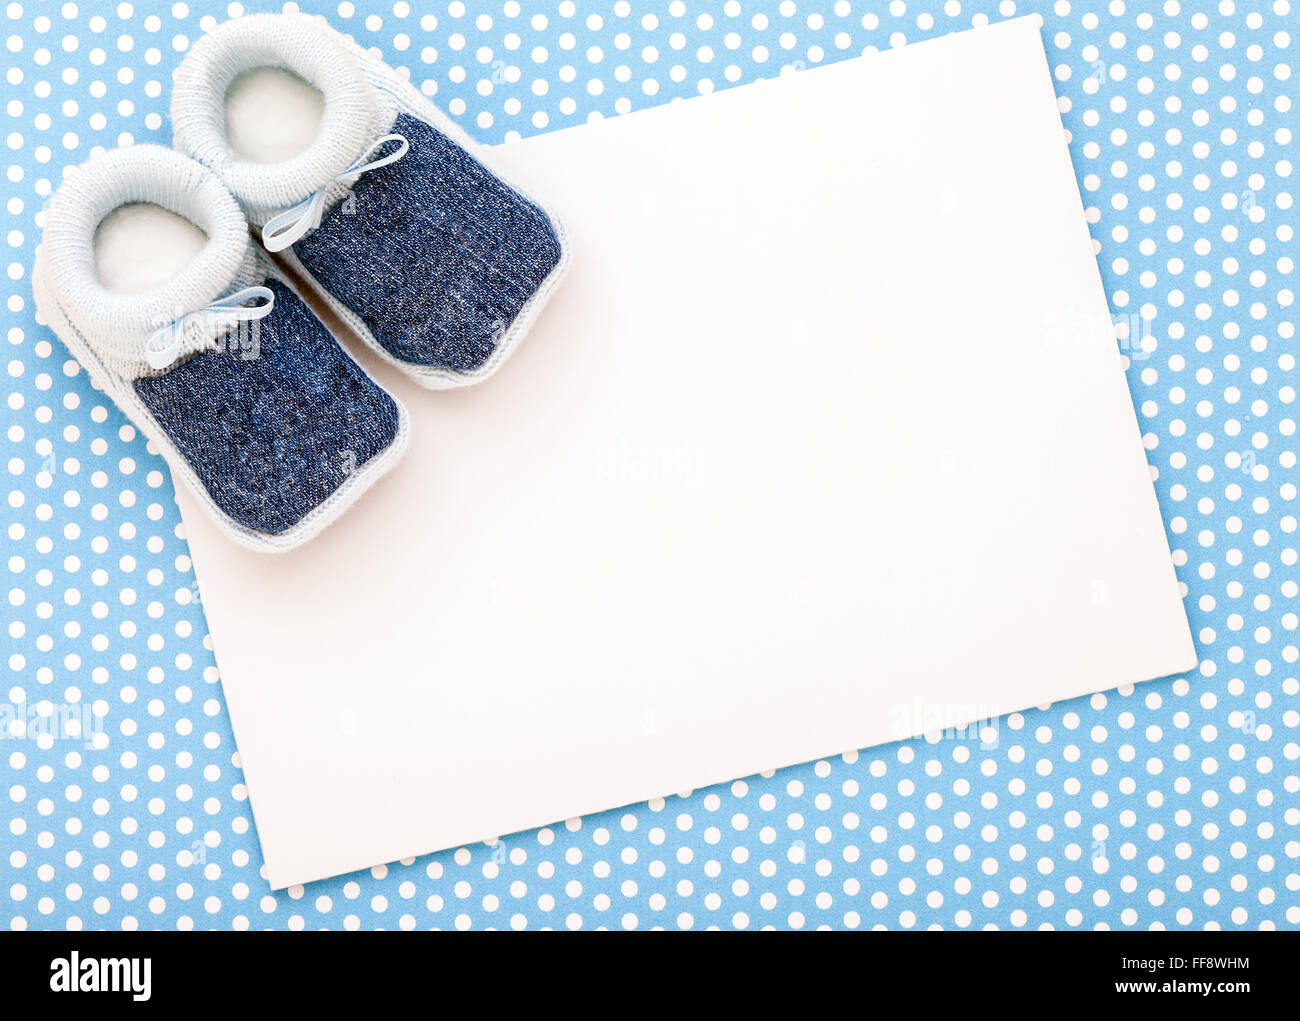 Baby Girl Nursery Wallpaper Borders Announcement Card With Blue Baby Boy Shoes On Blue Polka